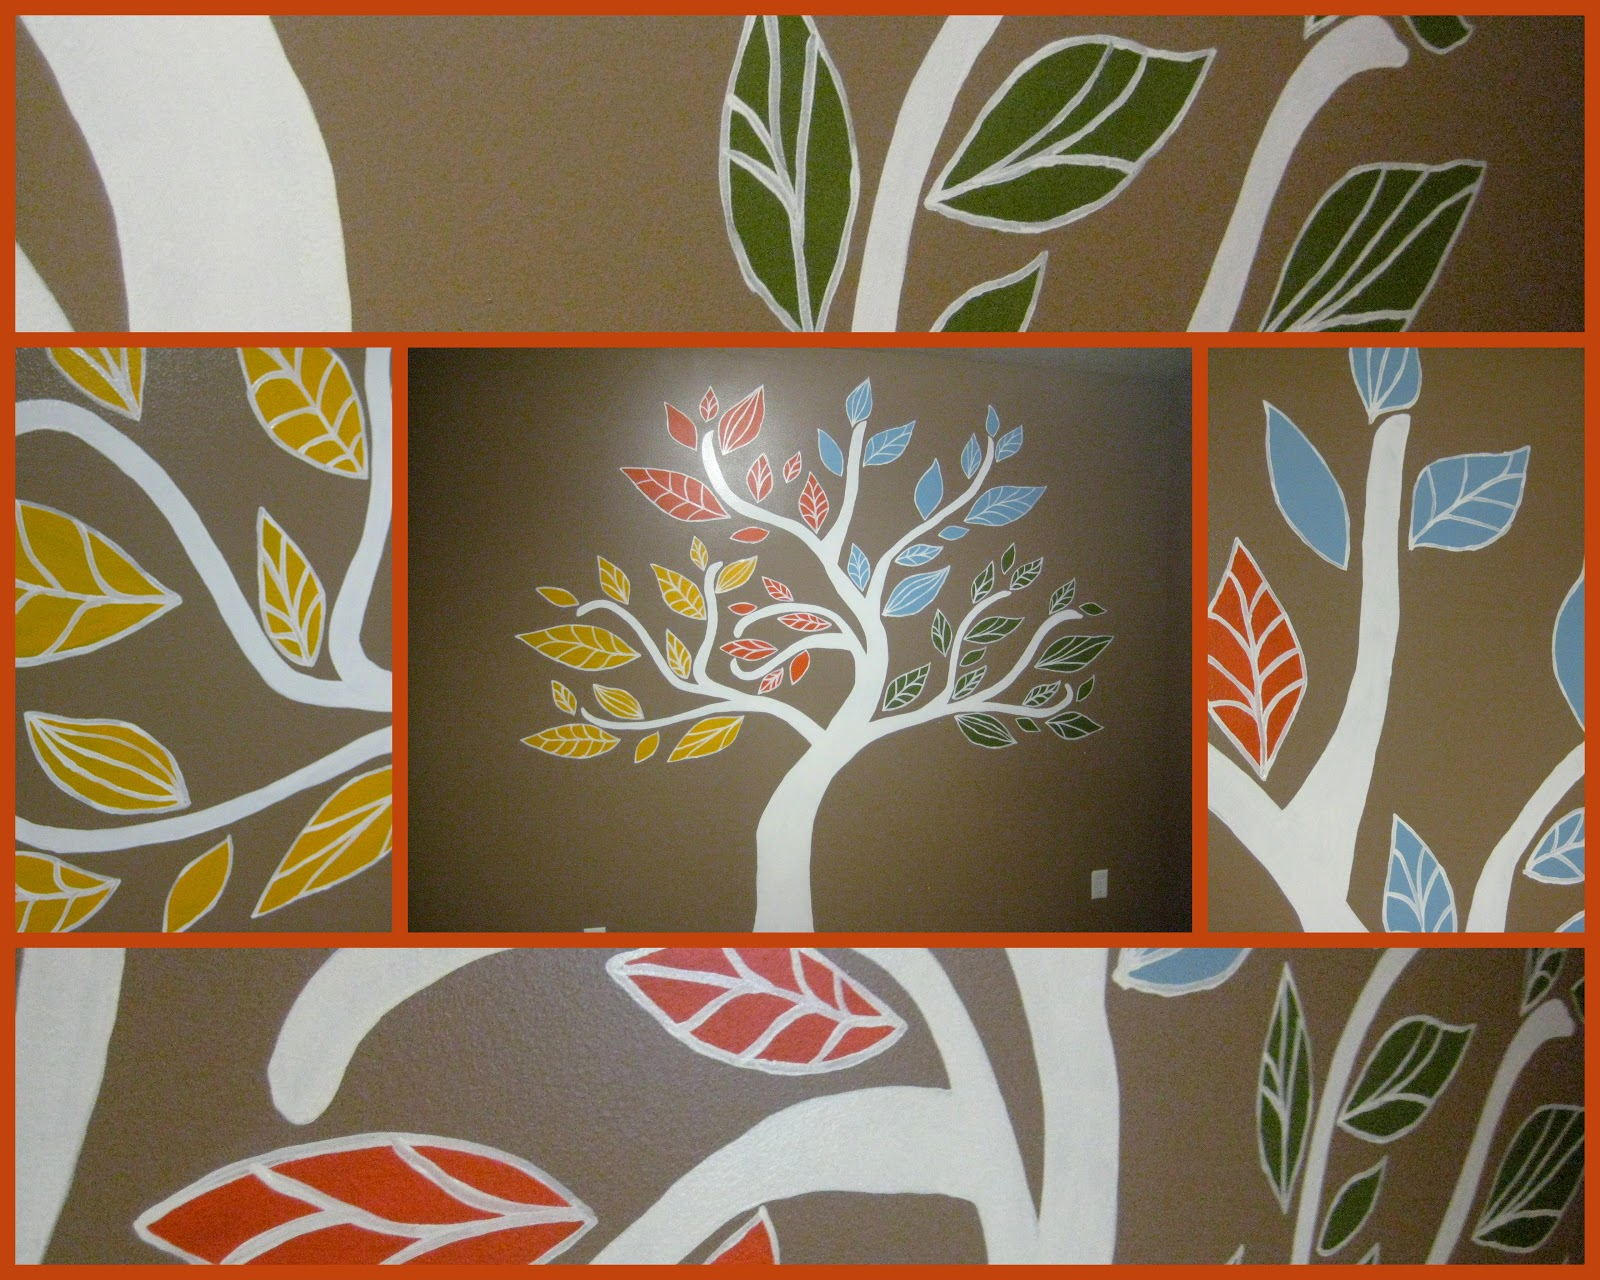 cobo four seasons tree mural